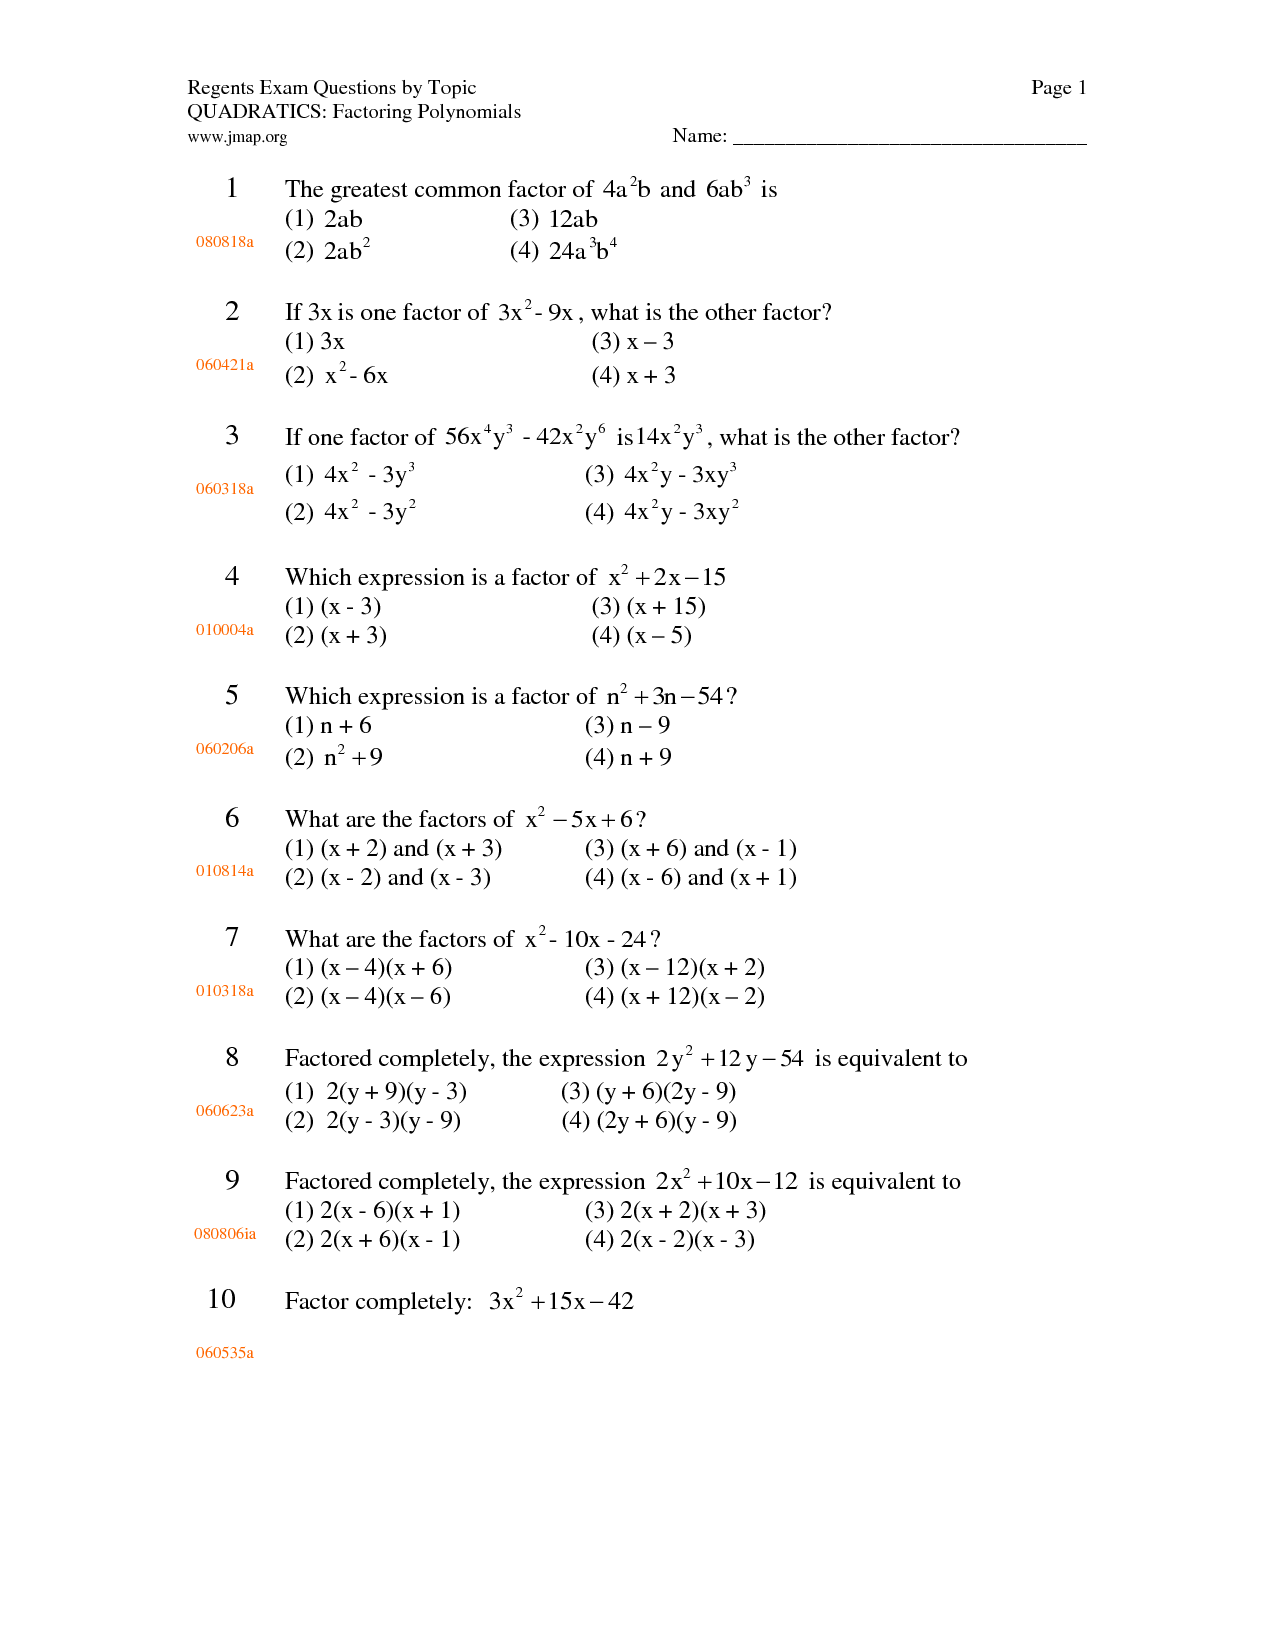 Worksheet Factoring Gcf And Grouping